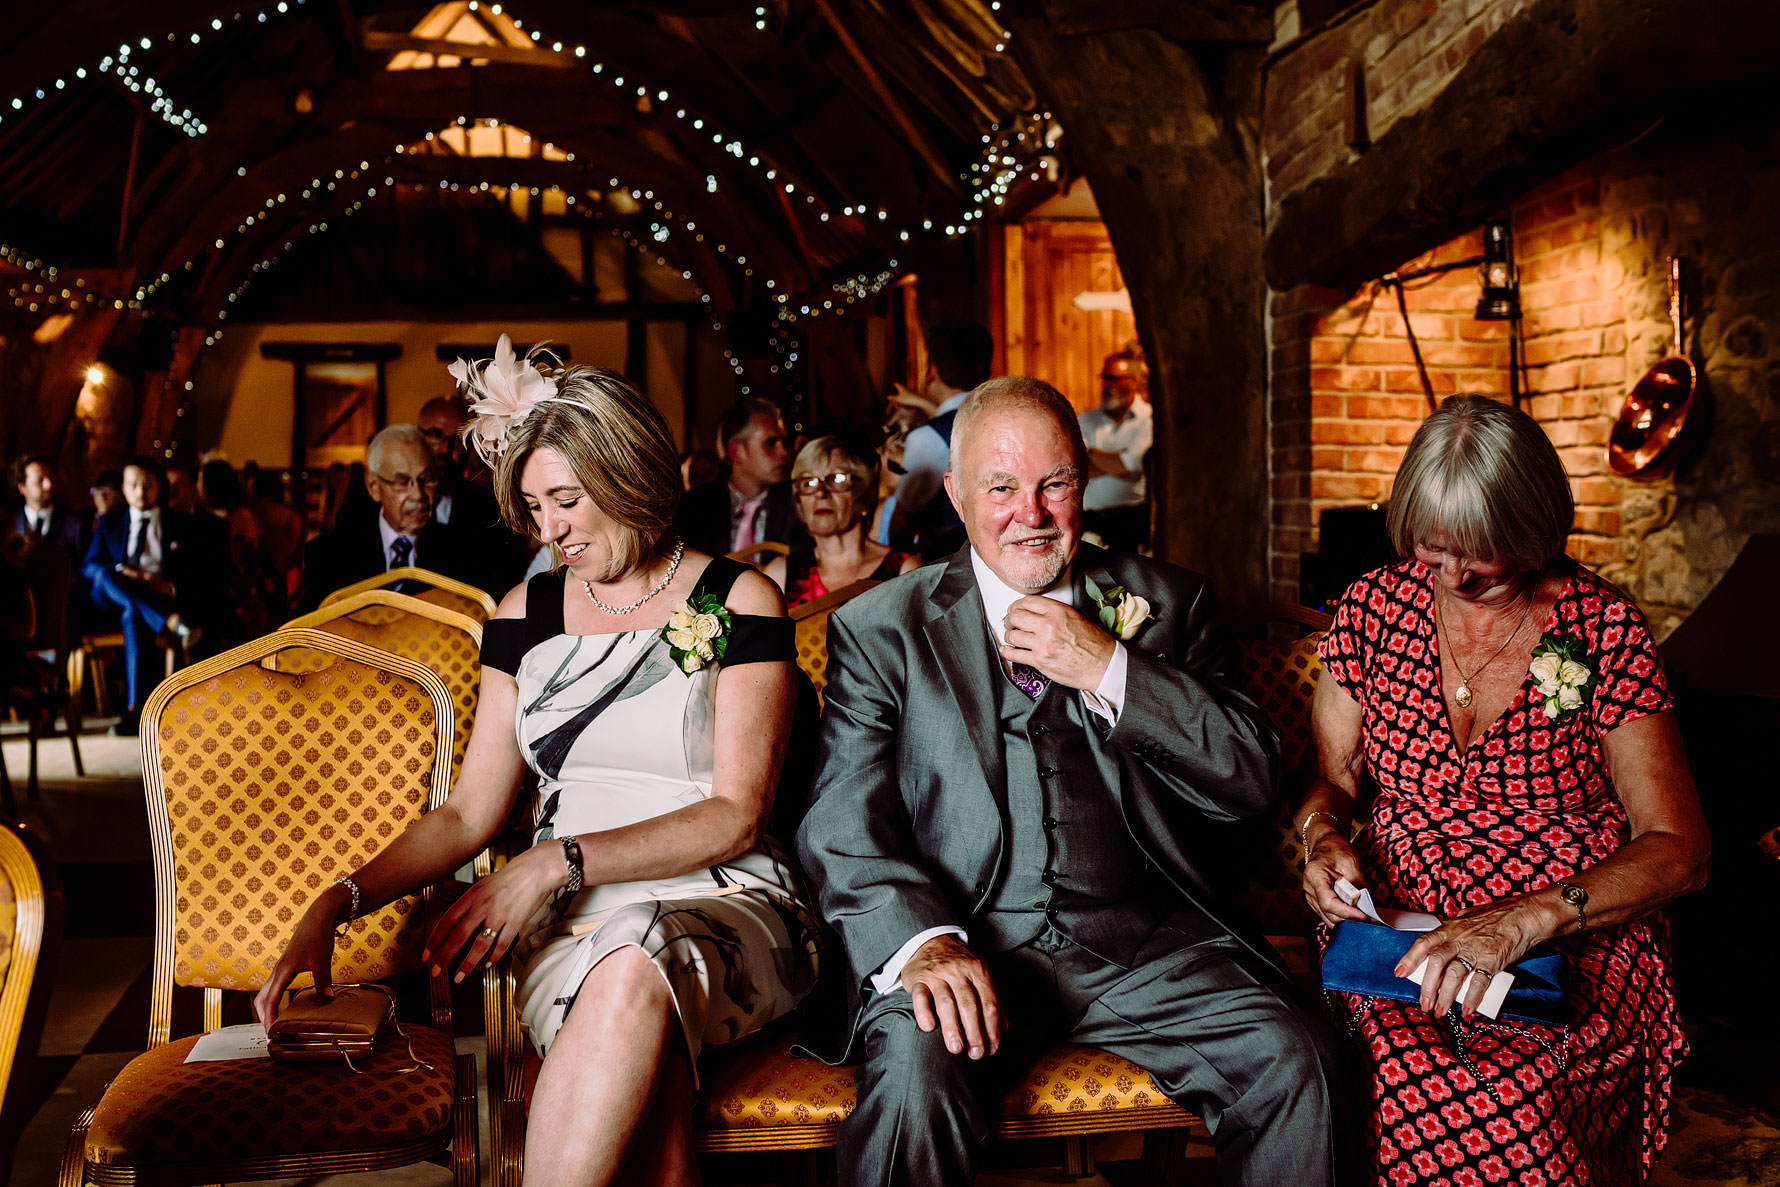 Notley Ththe Barn Wedding Photography by Elliot W Patching Photography